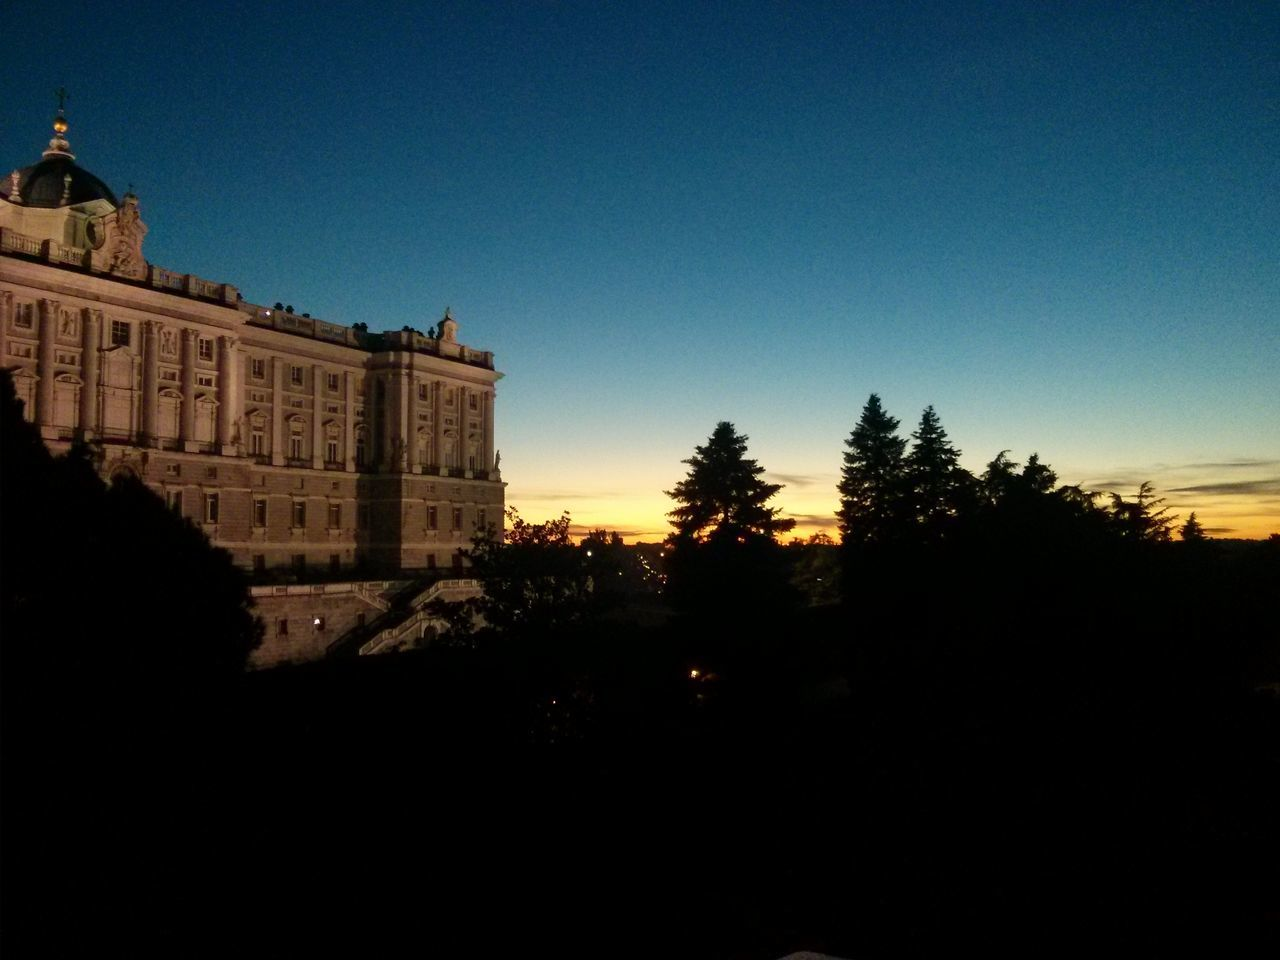 Royal palace, Madrid Royal Palace Palacio Real, Madrid, Spain Sunset Night Sky